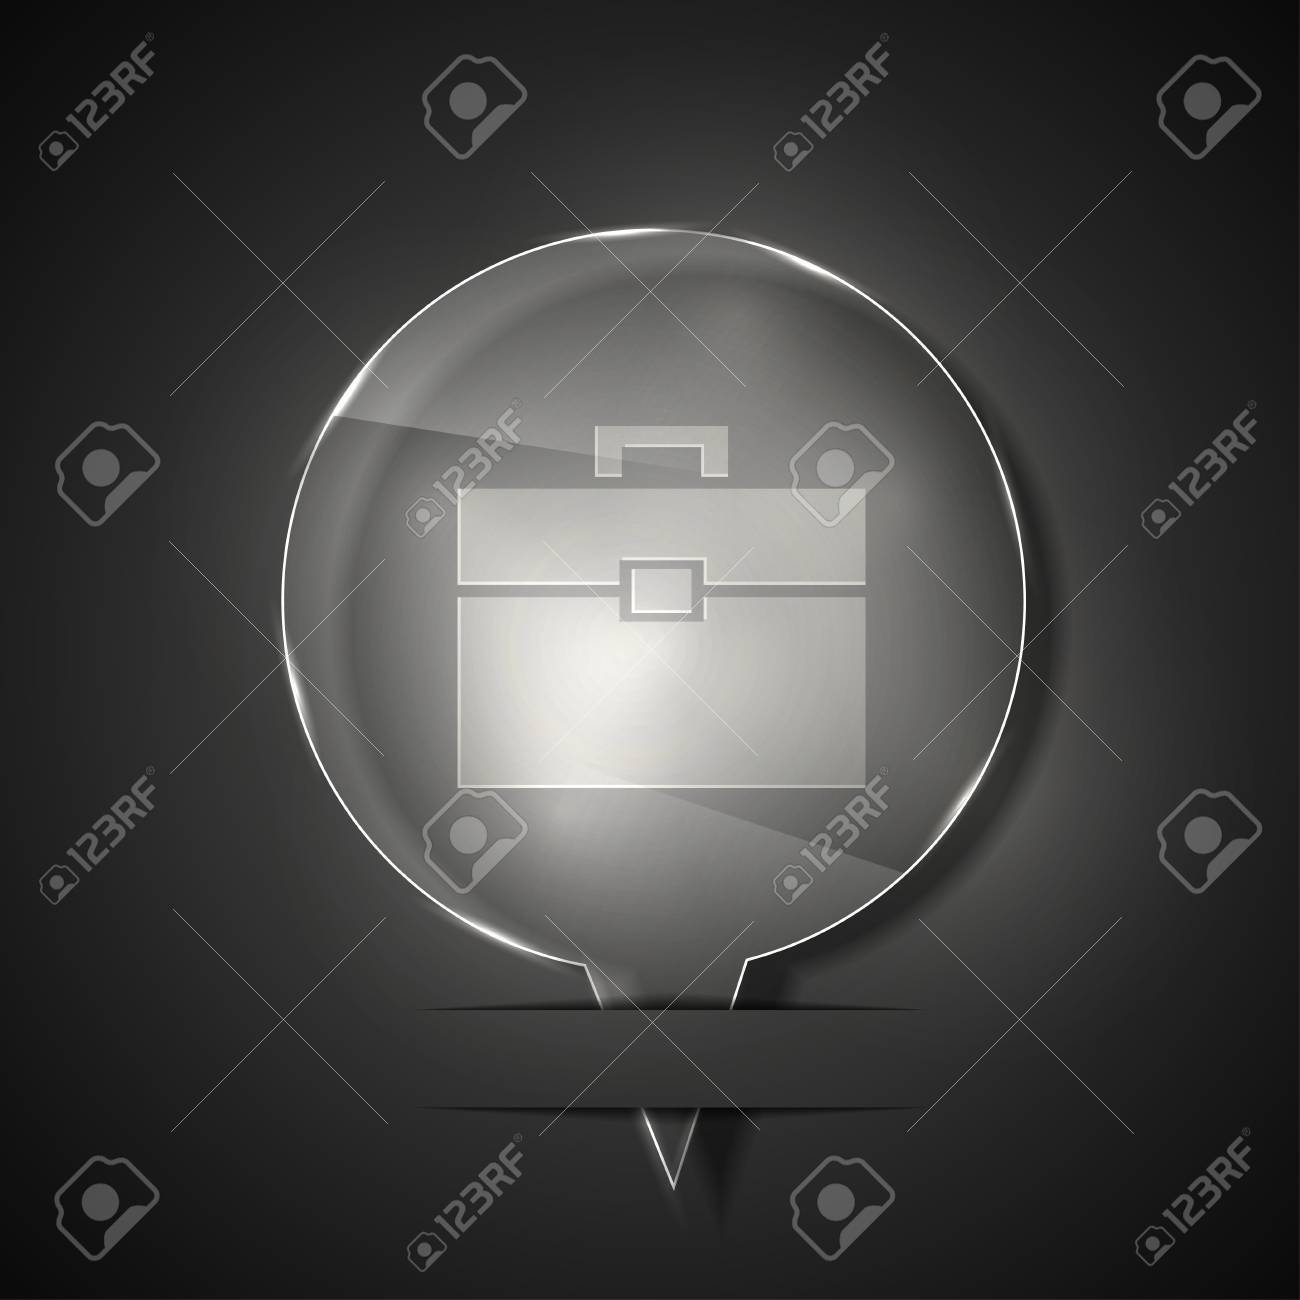 glass briefcase icon on gray background. Stock Vector - 15145604